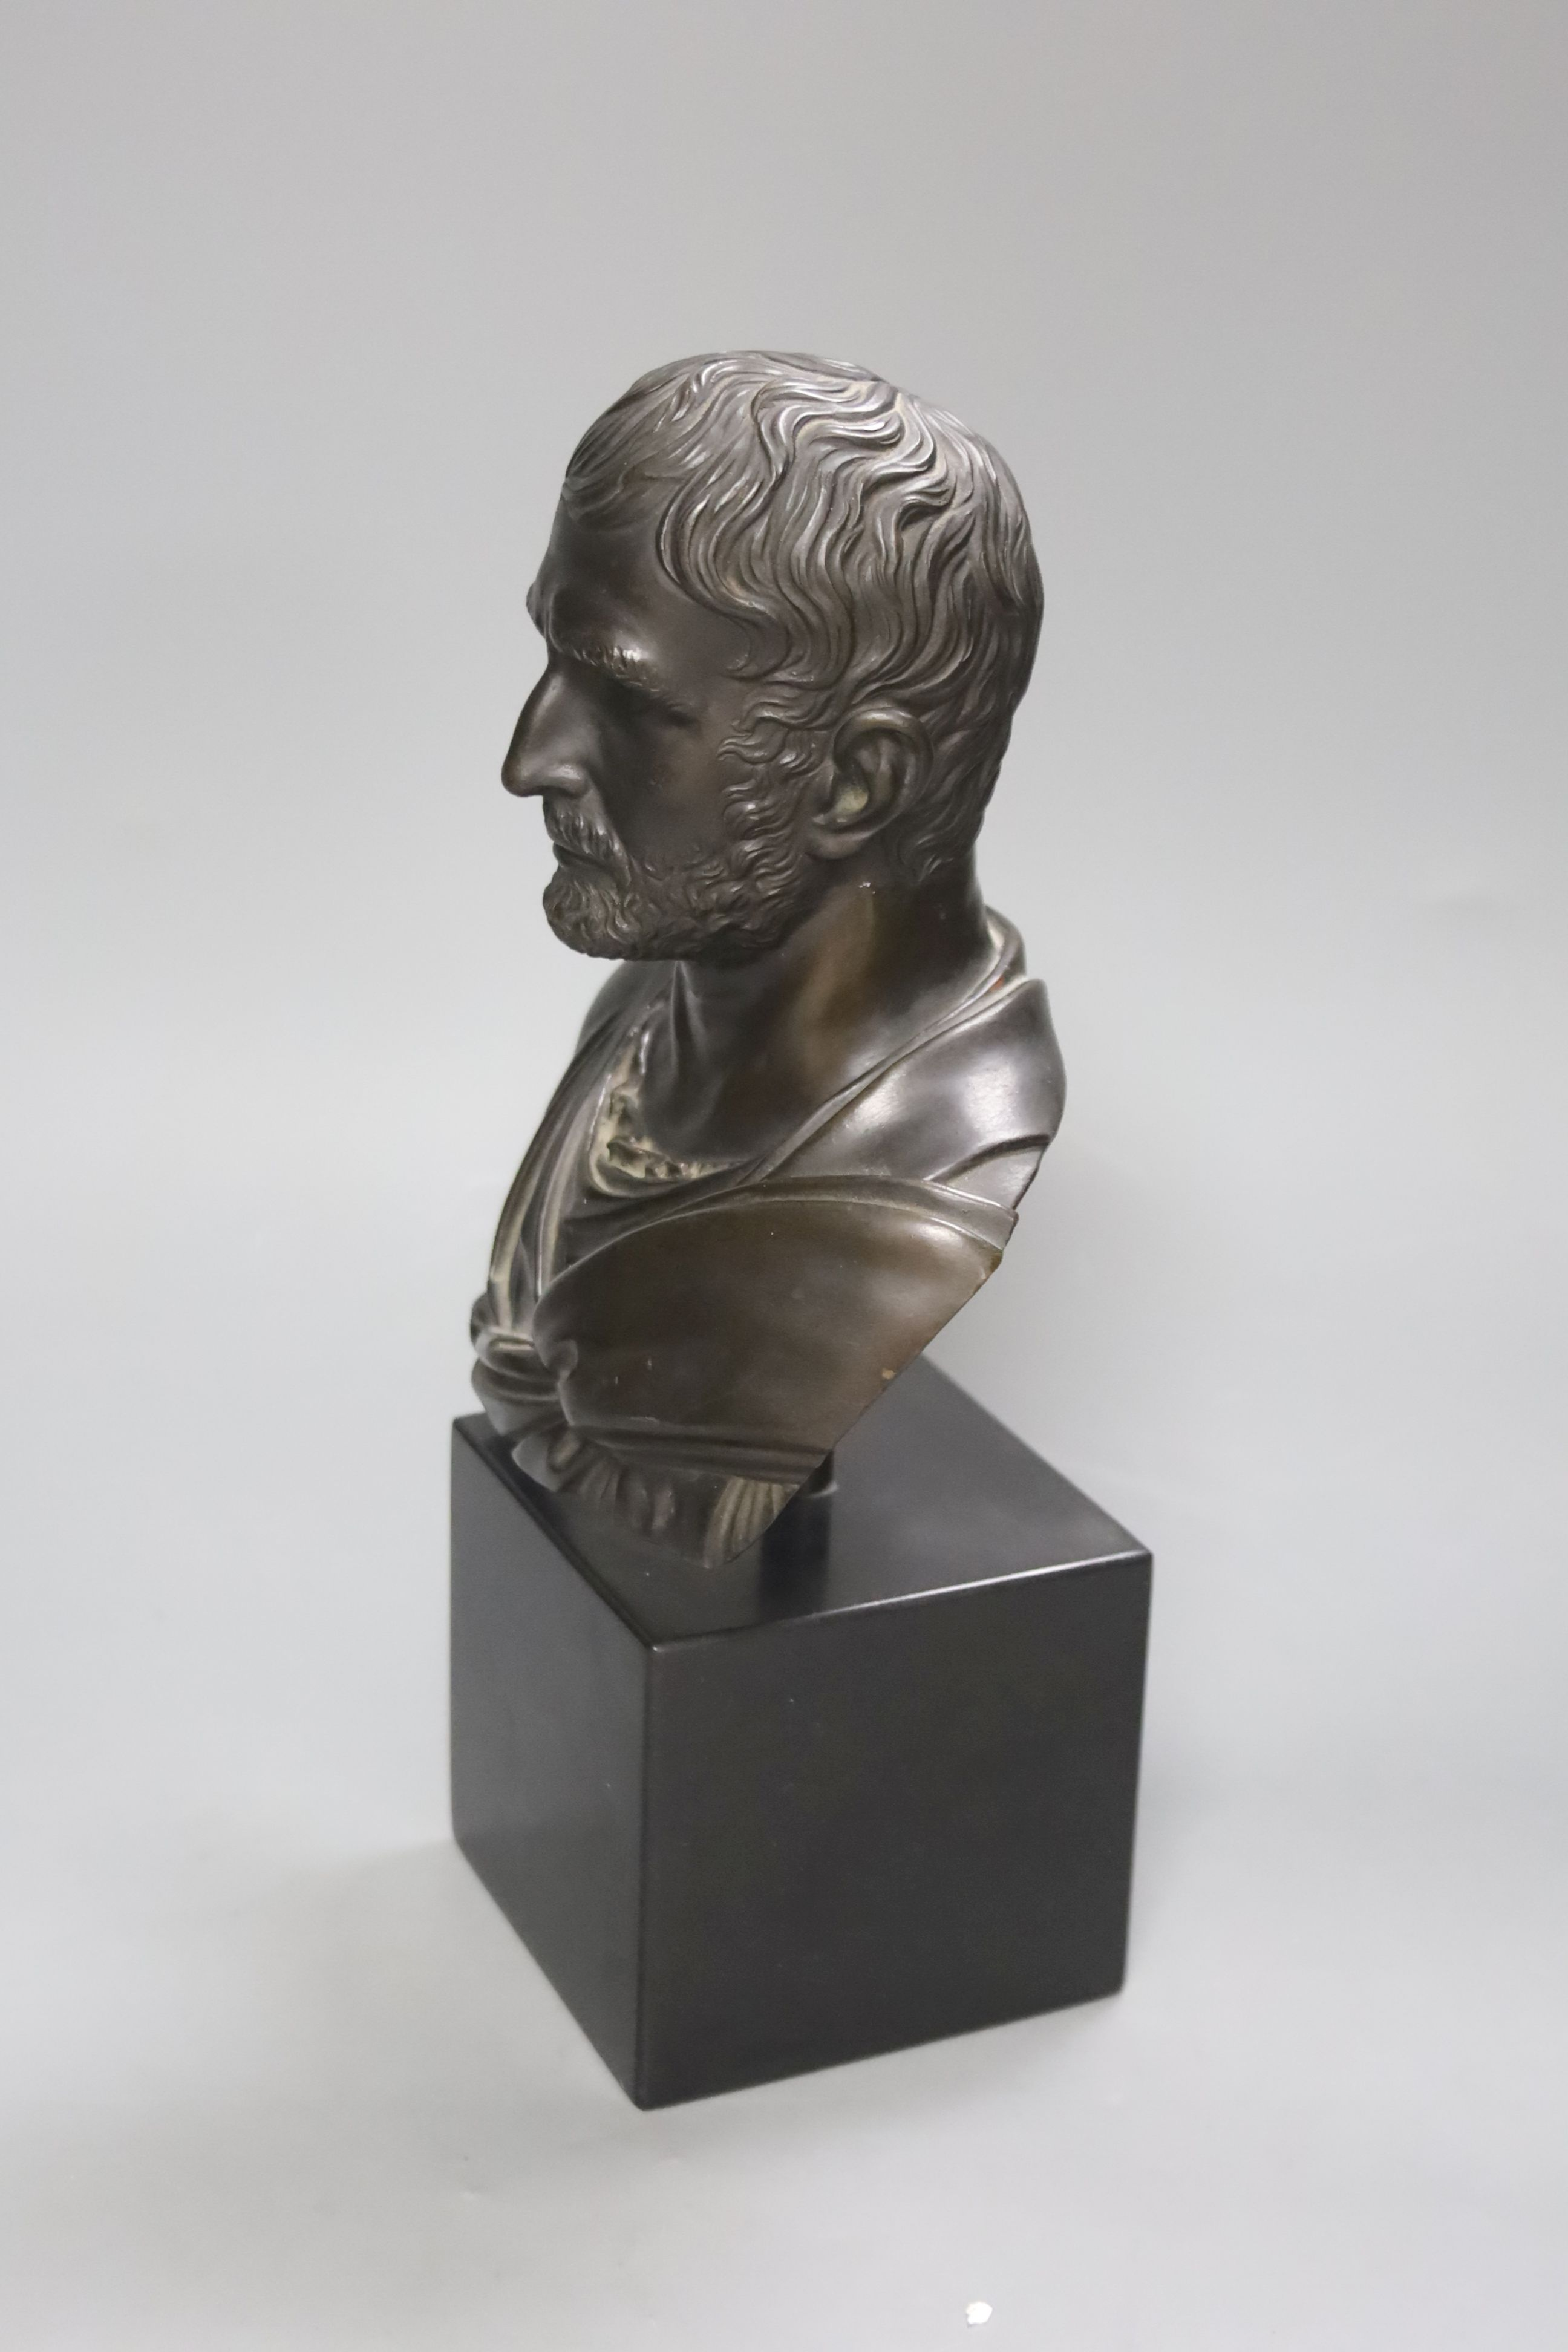 A bronze bust of a Roman Emperor, height 30cm - Image 2 of 3